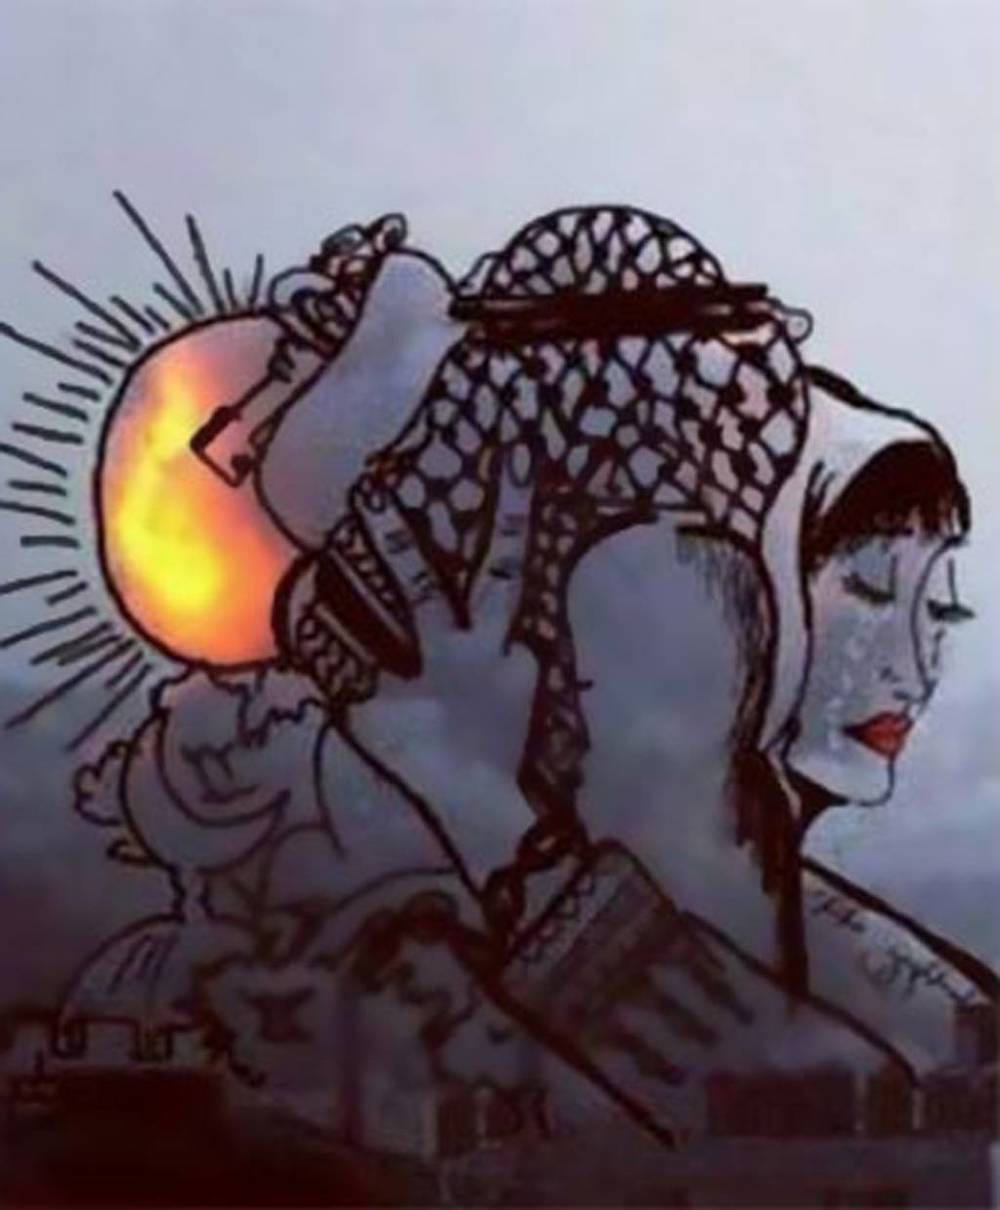 Sig of peace, the Palestinian traditional scarf, the Islamic crescent, a face of hope and sadness, Love, the key to return home and the sun to show a new day.